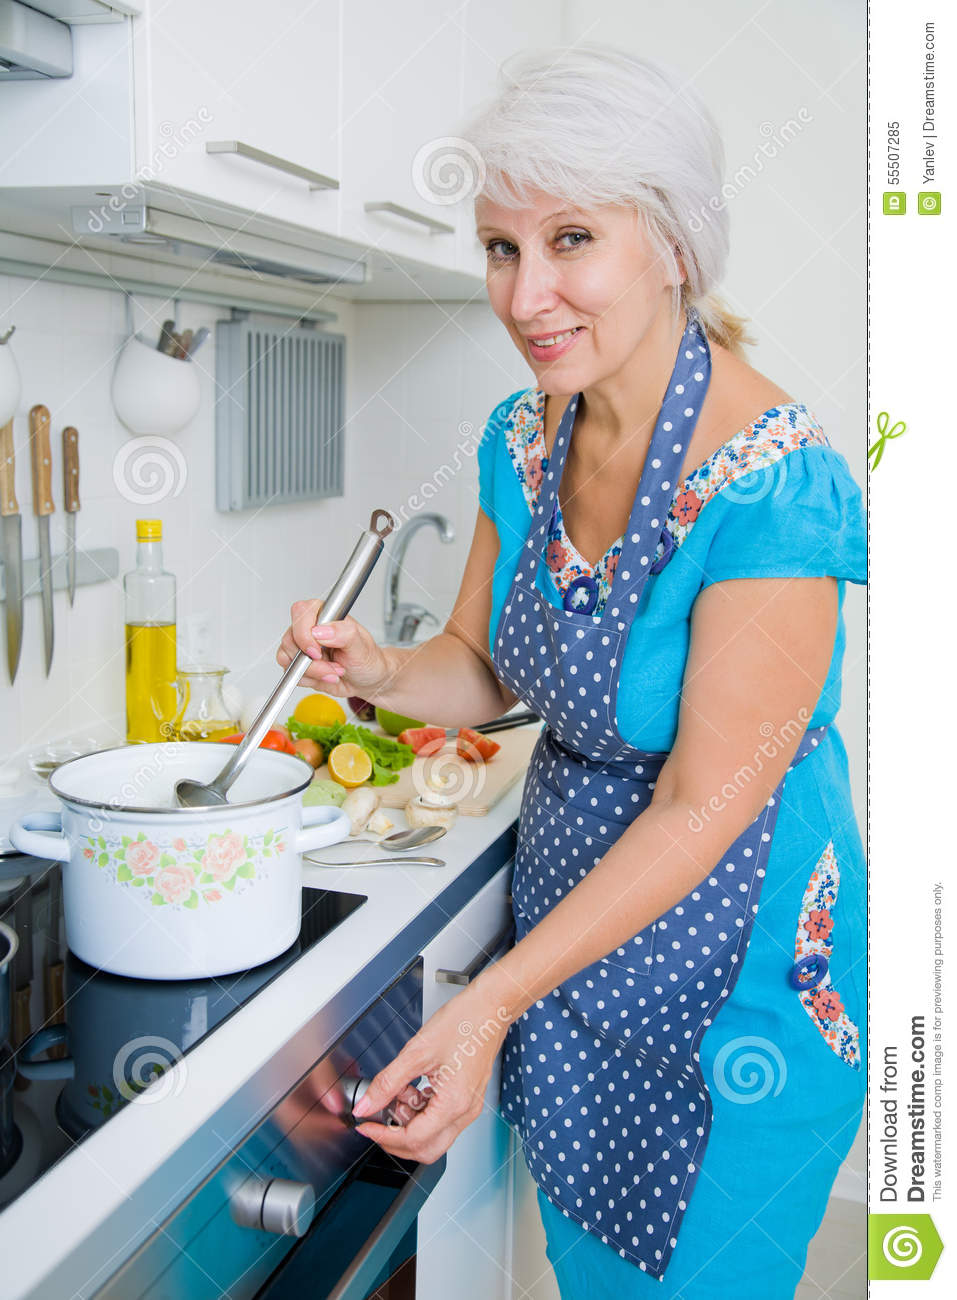 Many mature women kitchen